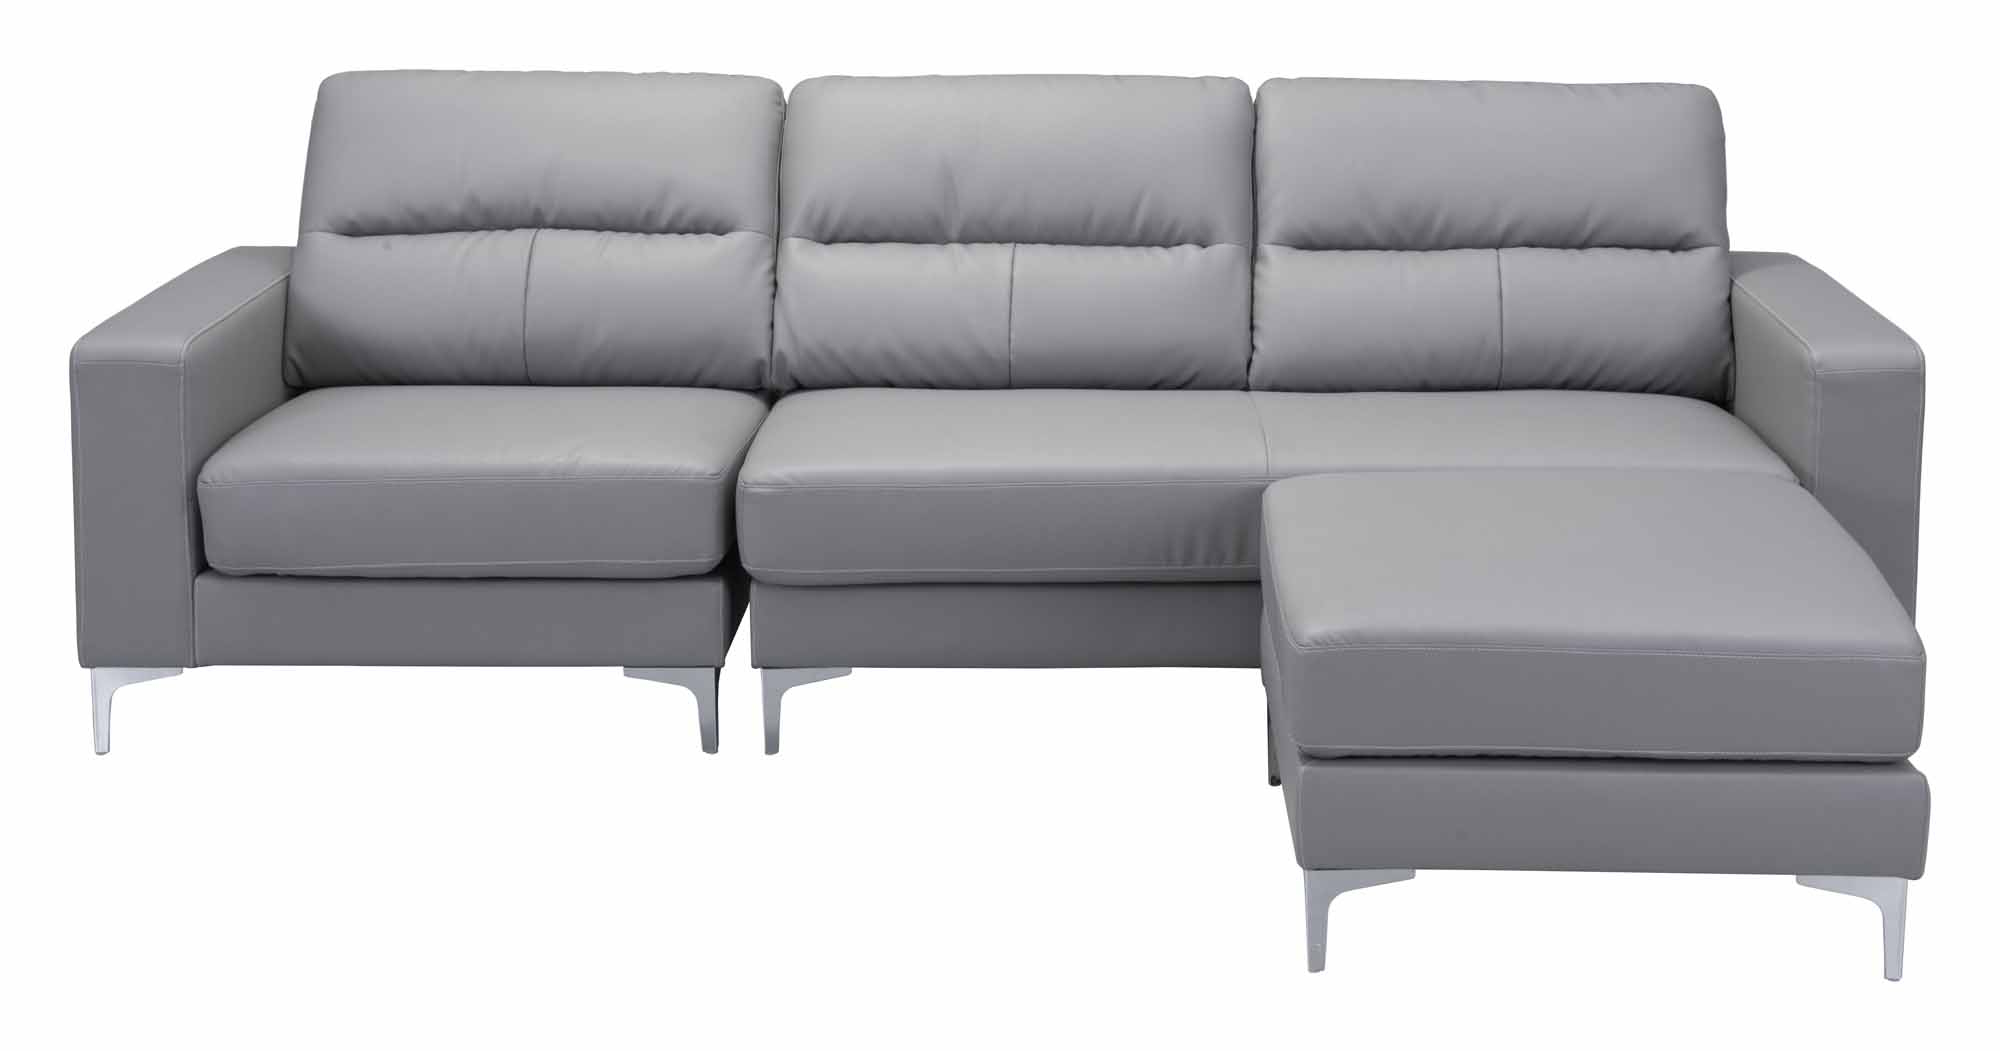 Versa Sectional Grayzuo Modern Inside 2018 Marius Dark Grey 3 Piece Sectionals (View 18 of 20)